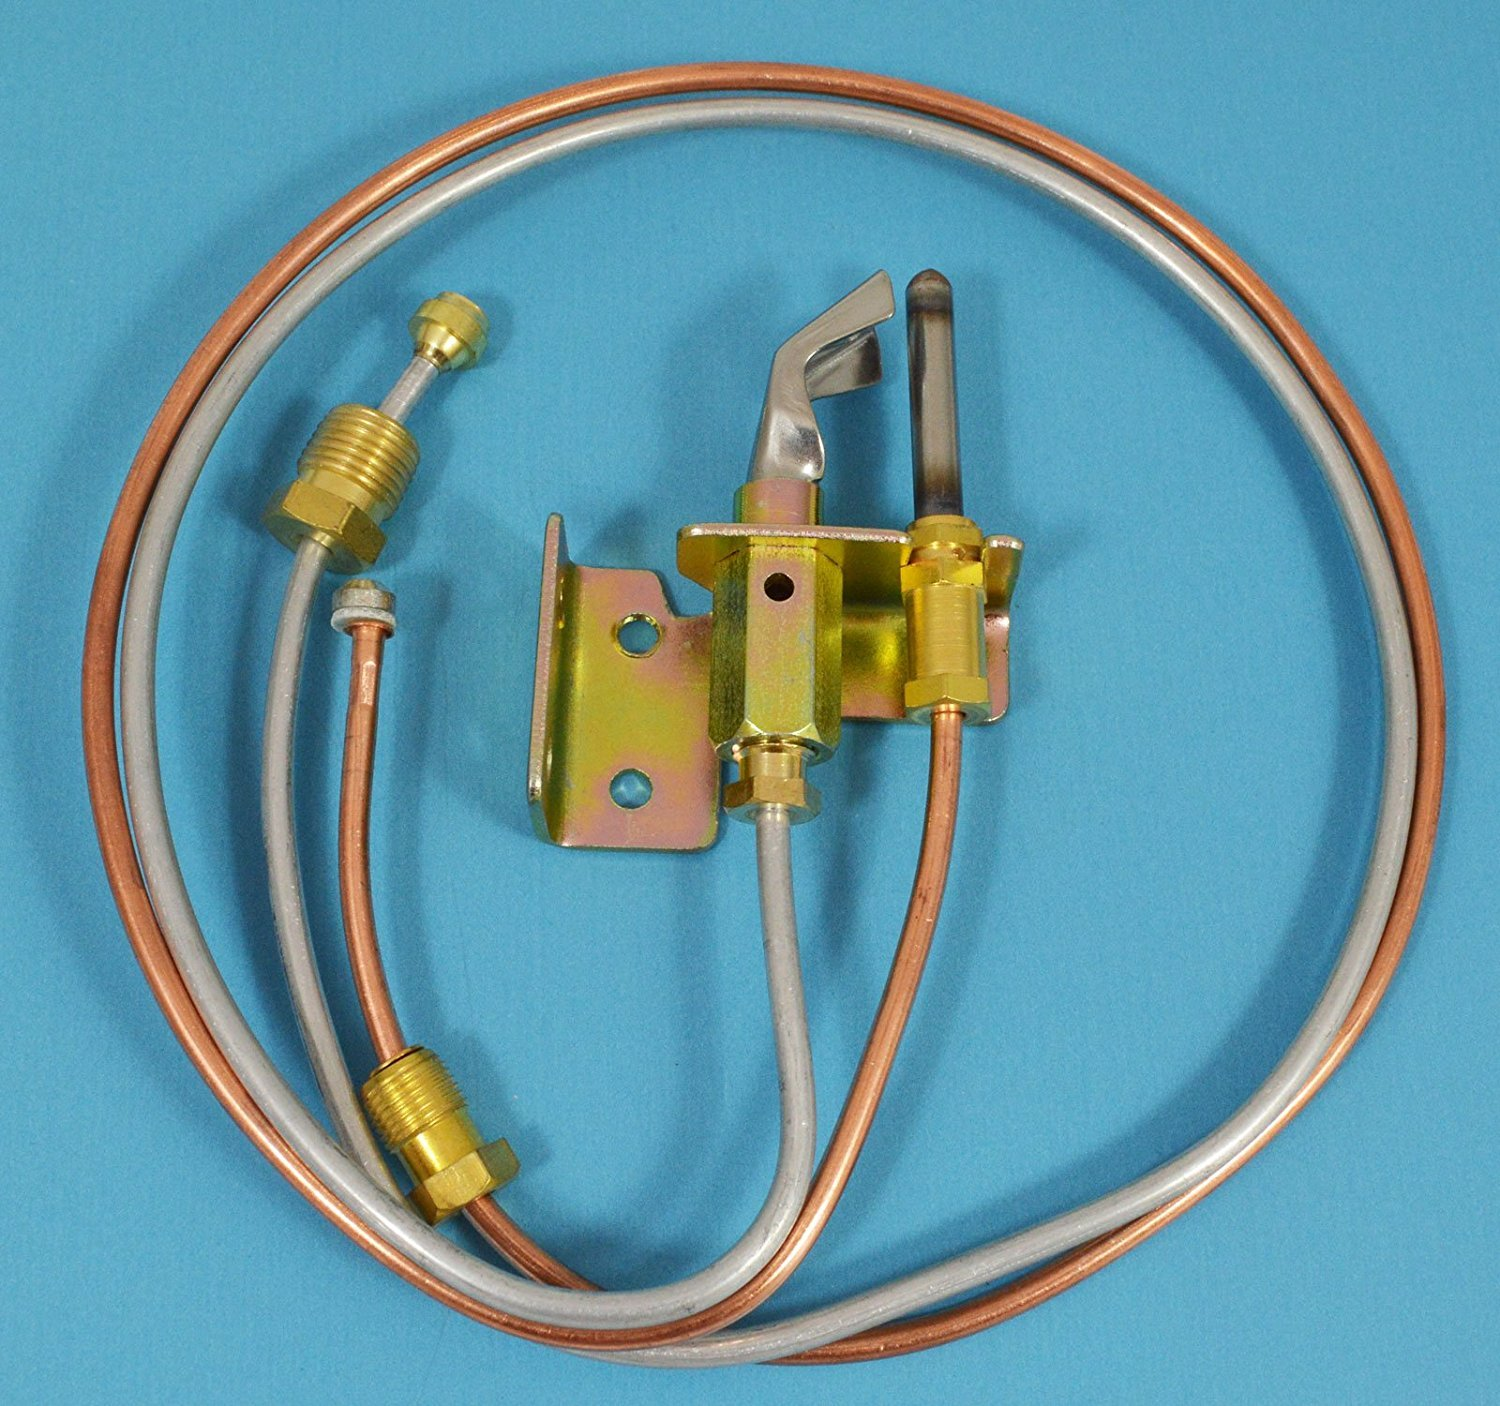 Water Heater Pilot Assembely Includes Pilot Thermocouple and Tubing Natural Gas